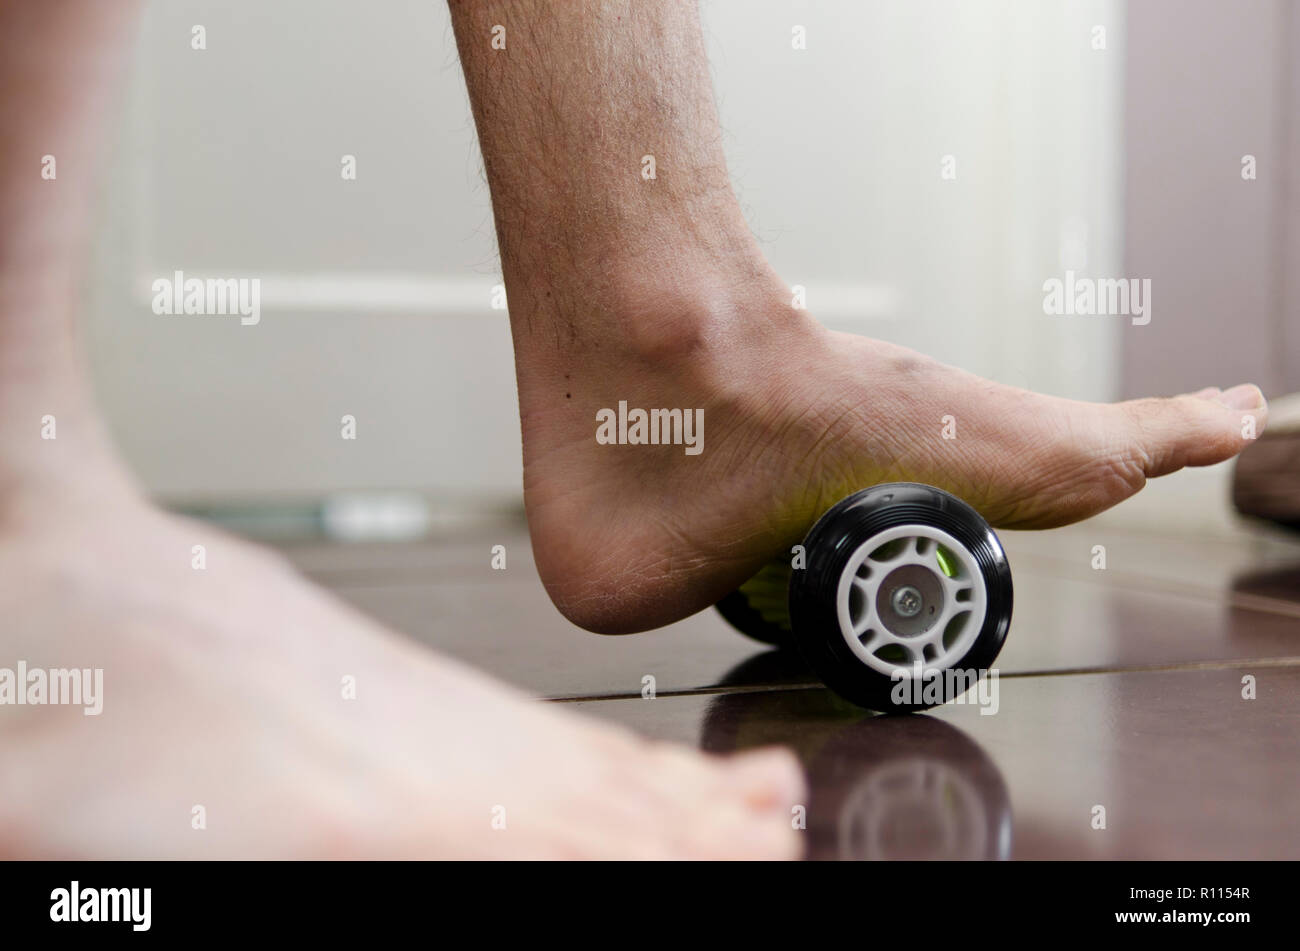 Plantar Fasciitis. Sufferer using a foot roller at home for treatment. Stock Photo